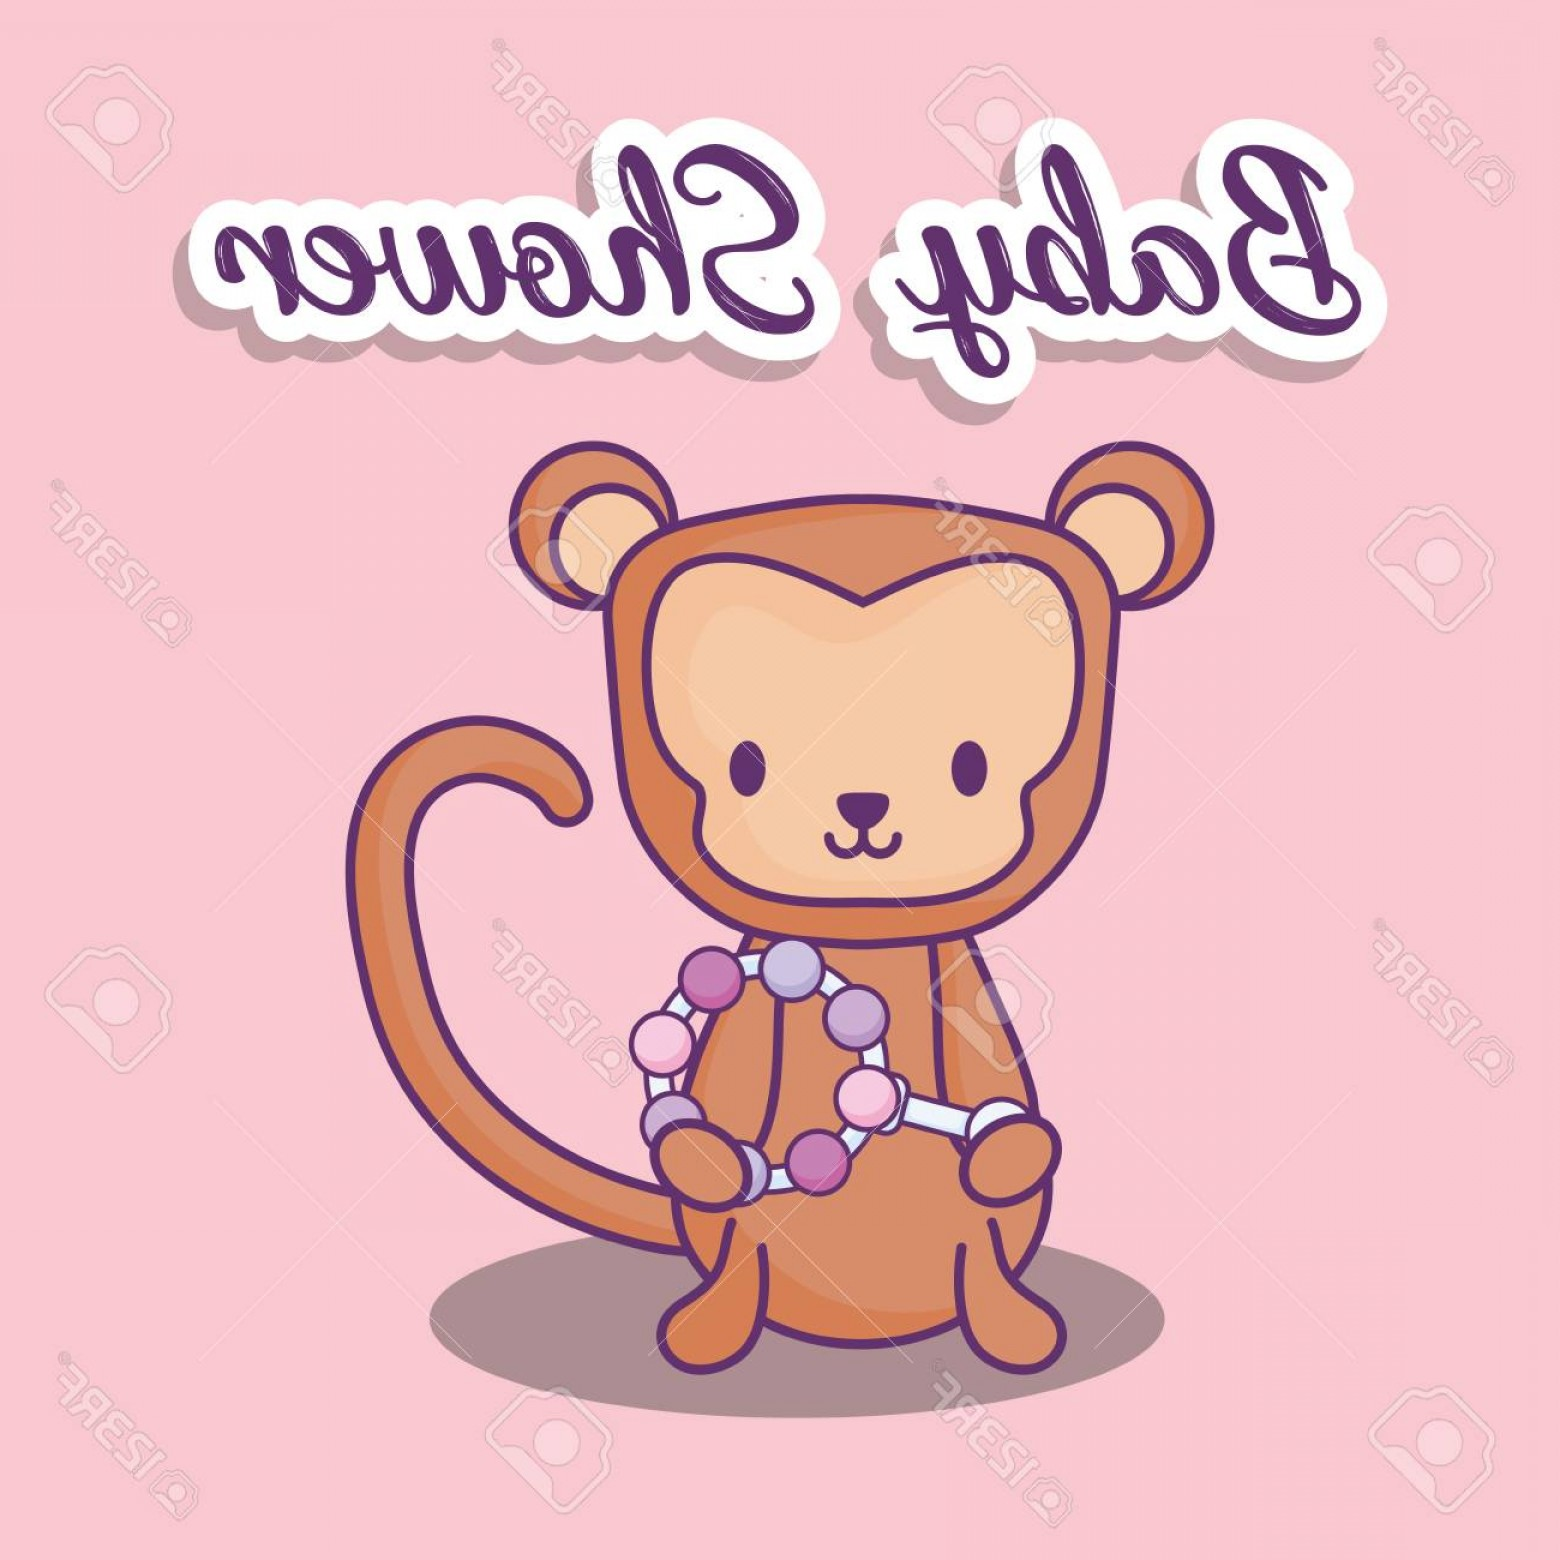 Sitting Monkey Vector Baby Shower: Photostock Vector Baby Shower Design With Cute Monkey Over Pink Background Colorful Design Vector Illustration